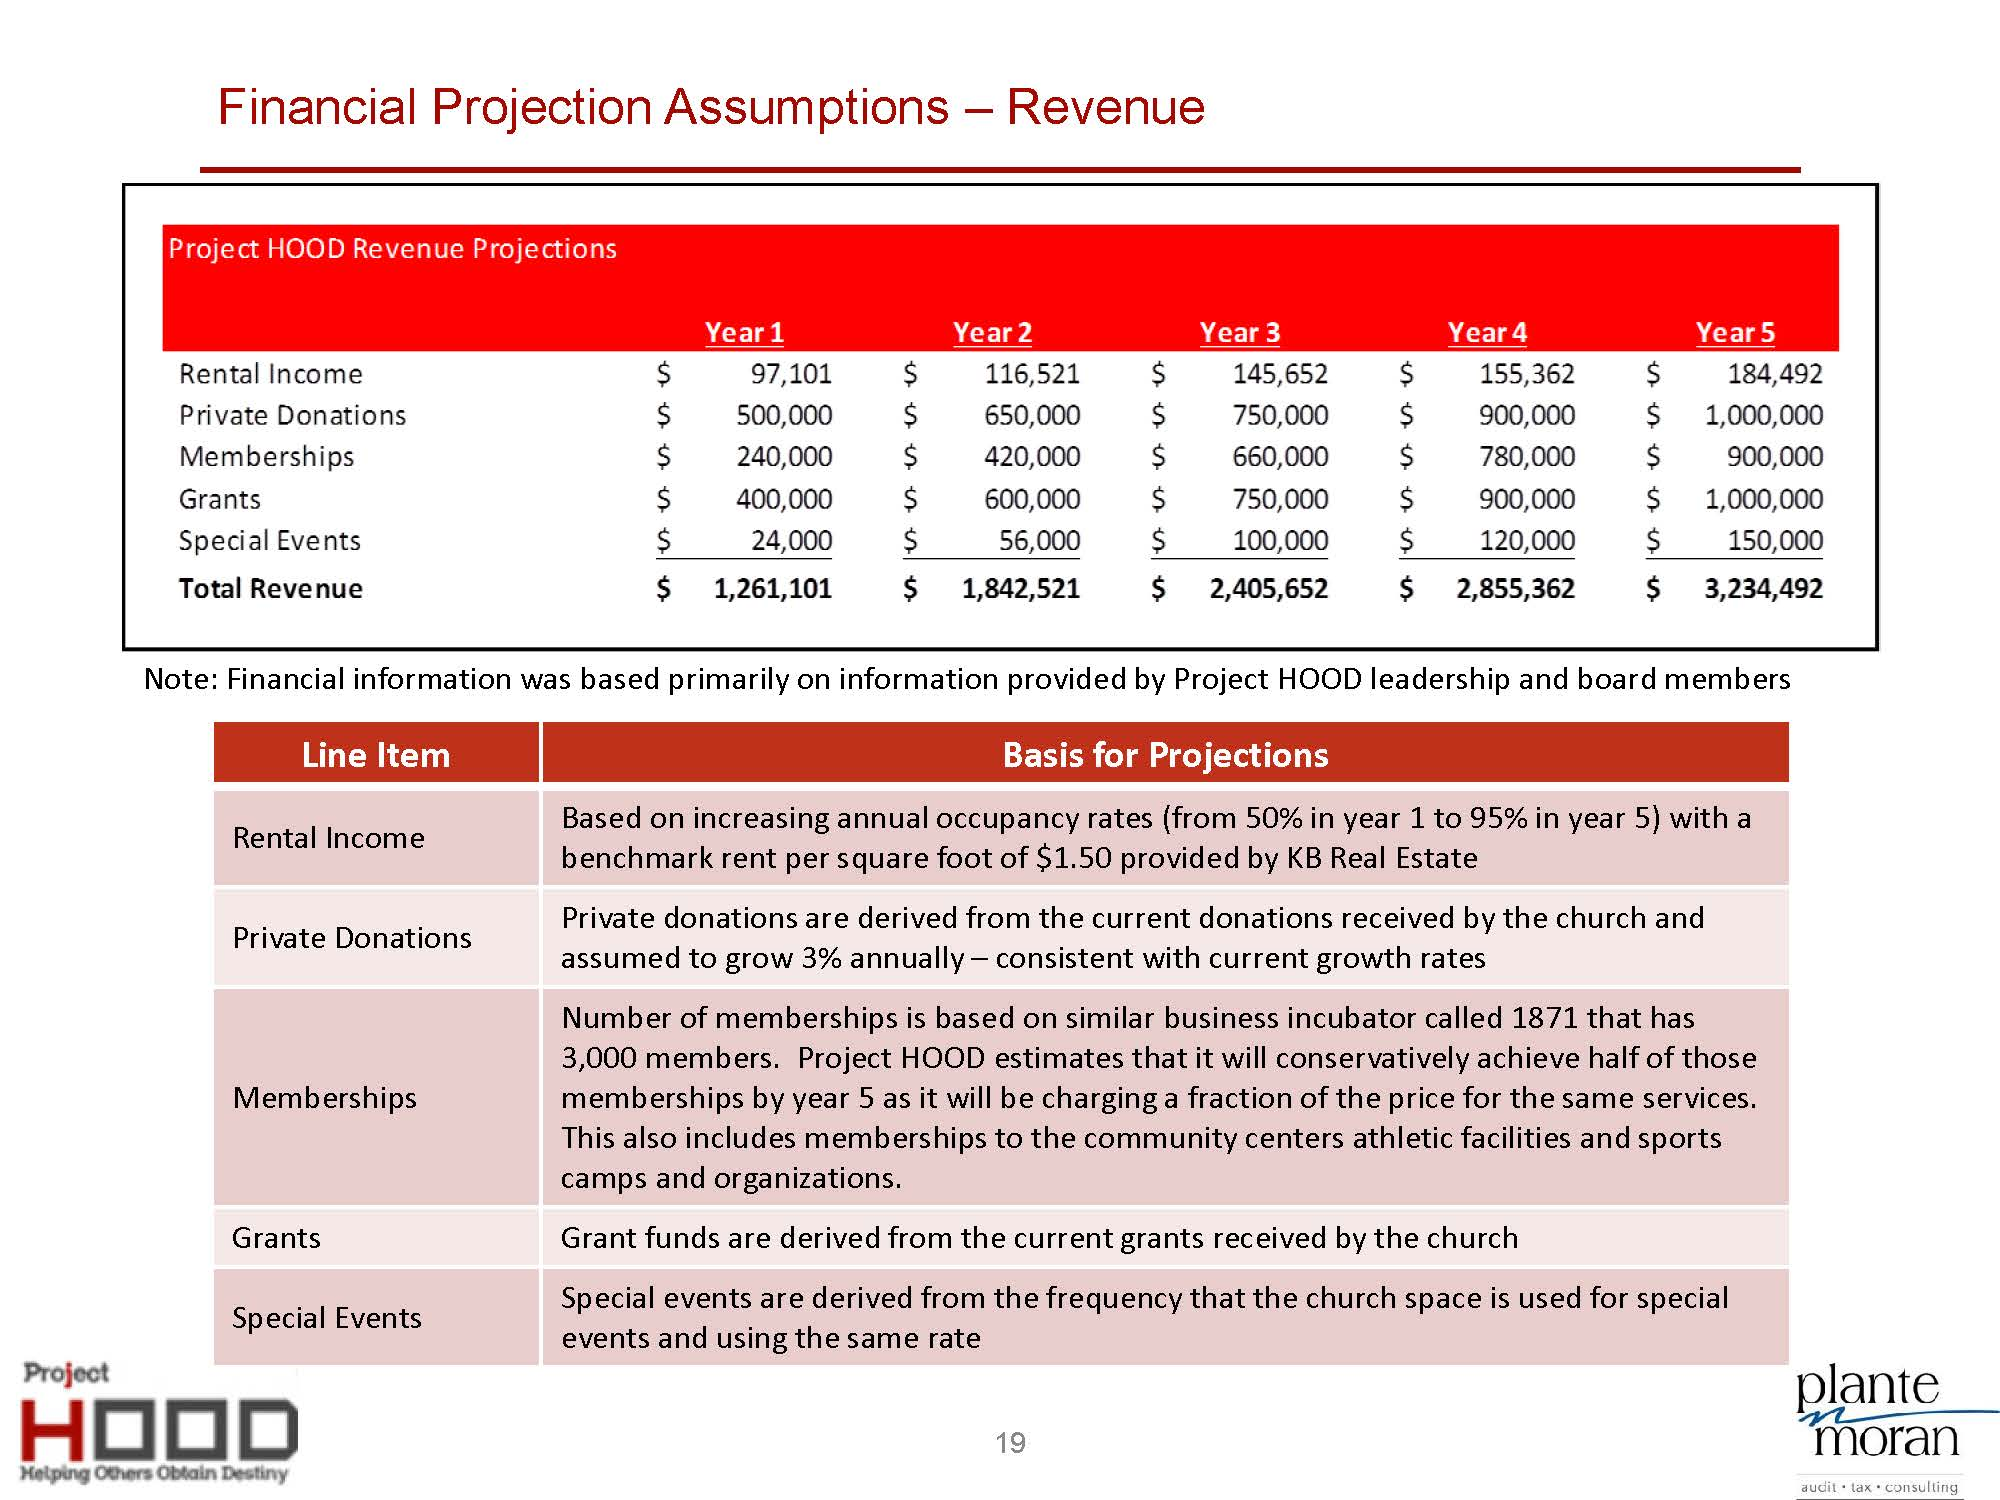 Project HOOD Community Center Business Plan_8-5_Page_19.jpg